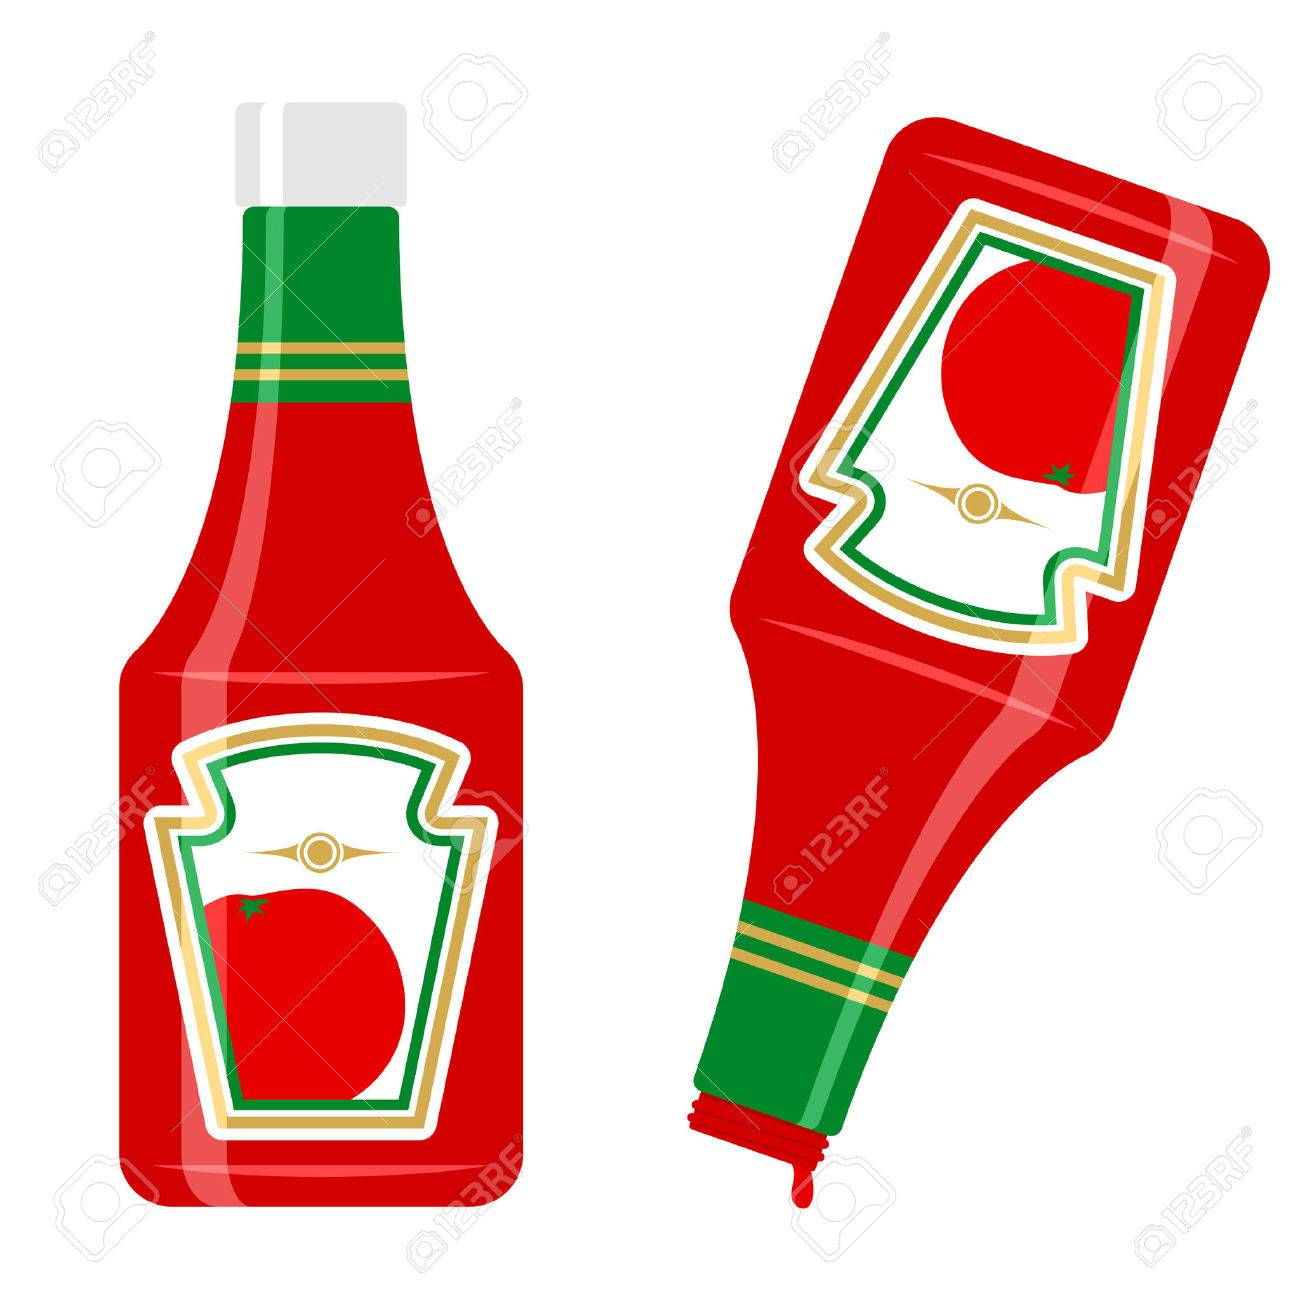 ketchup bottle royalty free cliparts vectors and stock rh 123rf com heinz ketchup clipart tomato ketchup clipart